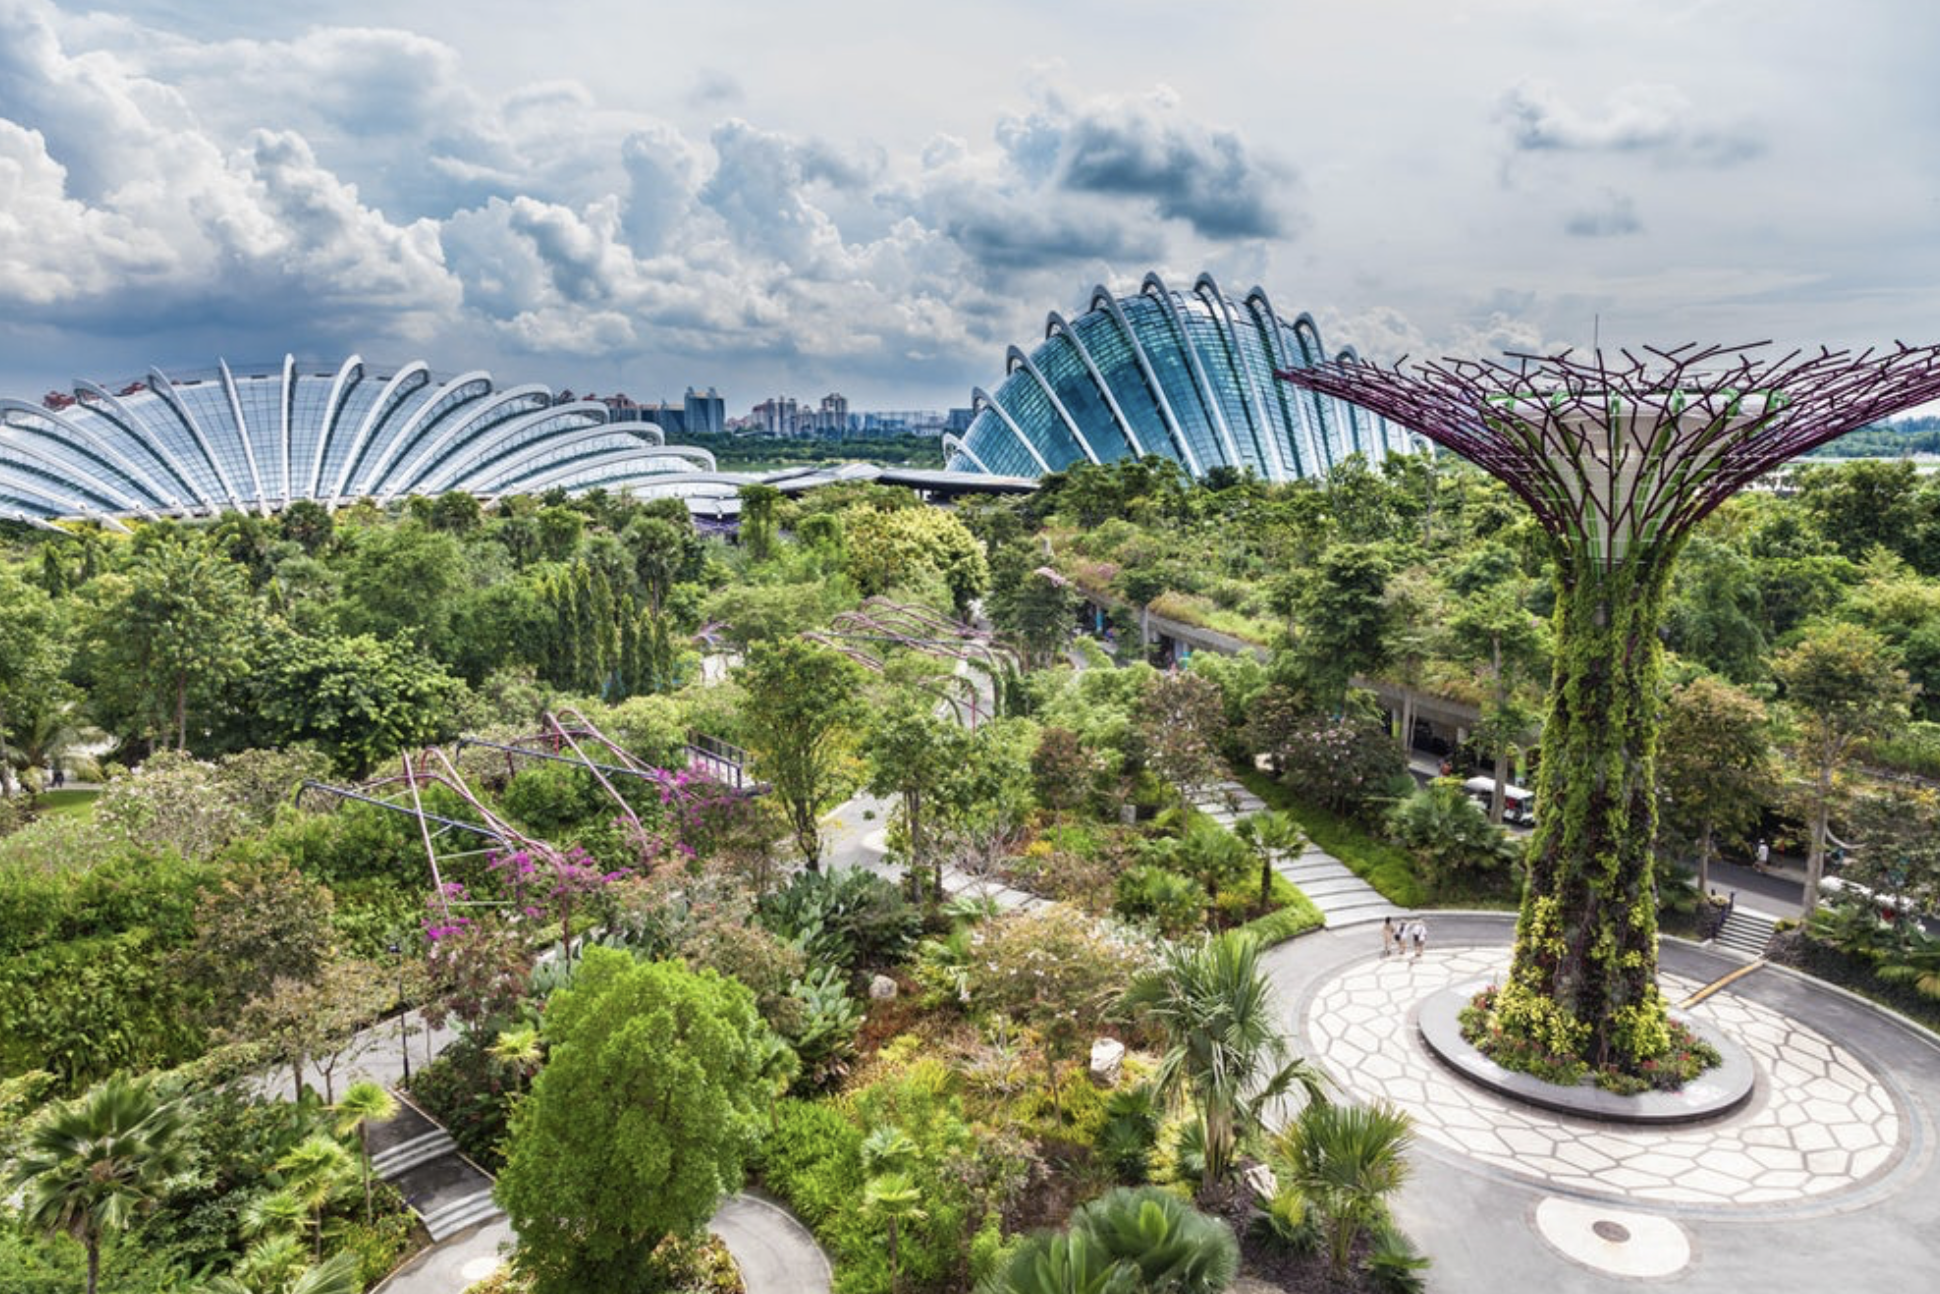 Gardens by the Bay + OCBC Skyway - $26.07/ppVisit an outstanding attraction of Singapore with the Gardens by the Bay and take a break from the pulsating life of the city. Here you will find the gardens Bay South, Bay East and Bay Central and get access to the winter gardens Flower Dome and Cloud Forest. Stroll to the newly opened Sun Pavilion and marvel at the flora and fauna from all over the world that house the gardens. On the way you will discover the largest indoor waterfall and hike in the middle of Supertree Grove.With this combination ticket you also experience the OCBC Skyway, from which you have a majestic view of Marina Bay. Soak up the tranquility and serenity of the gardens at the bay and let the mysterious, natural beauty of the vegetation, the lakes and the winter gardens take effect on you.